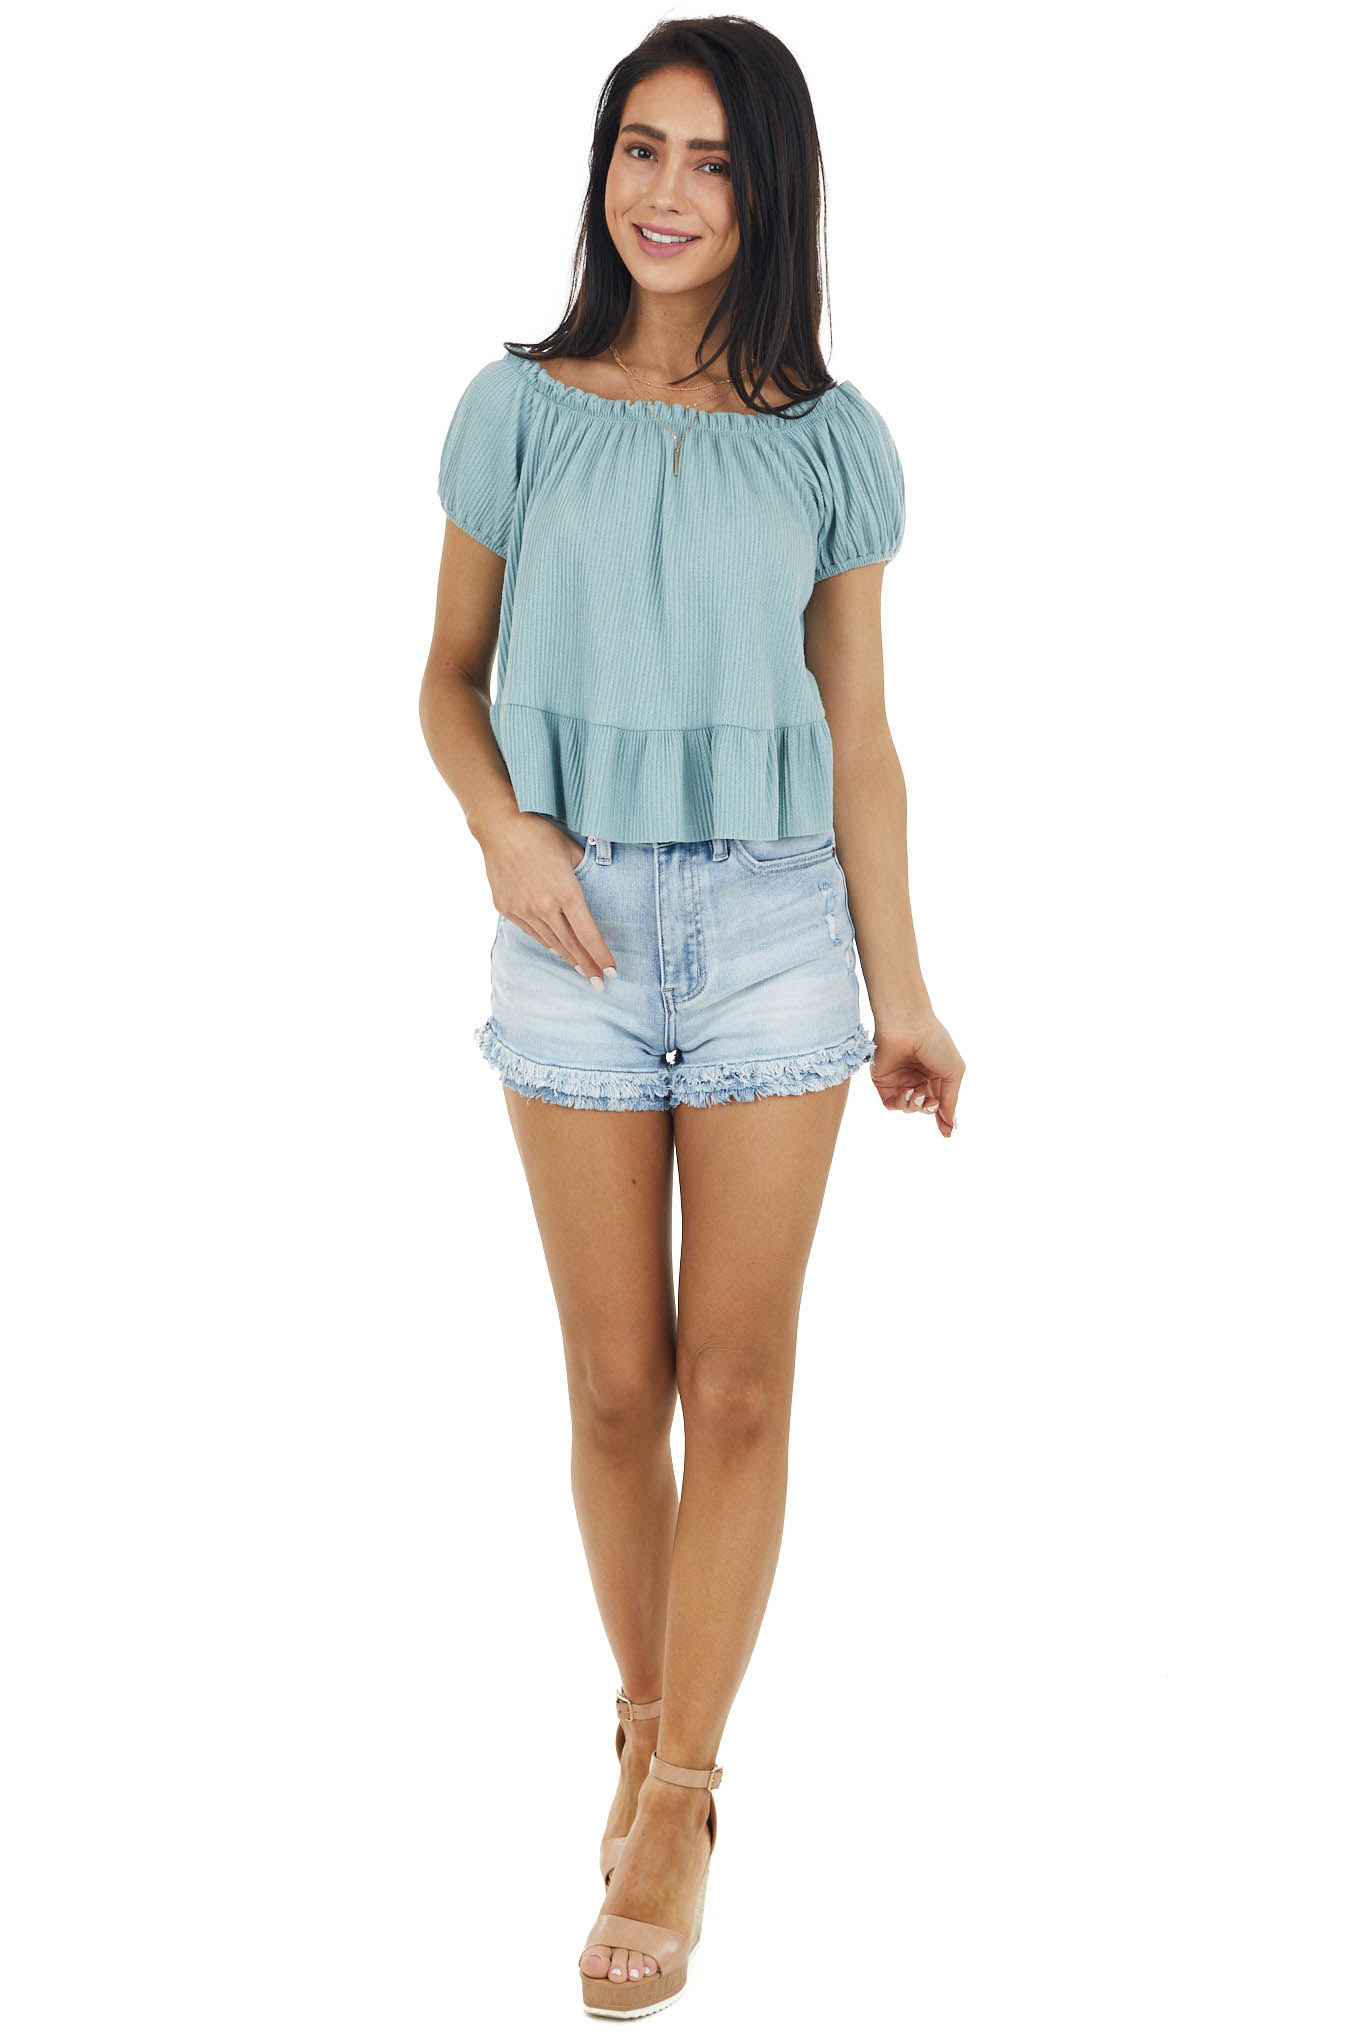 Sage Boat Neckline Ribbed Knit Crop Top with Ruffles